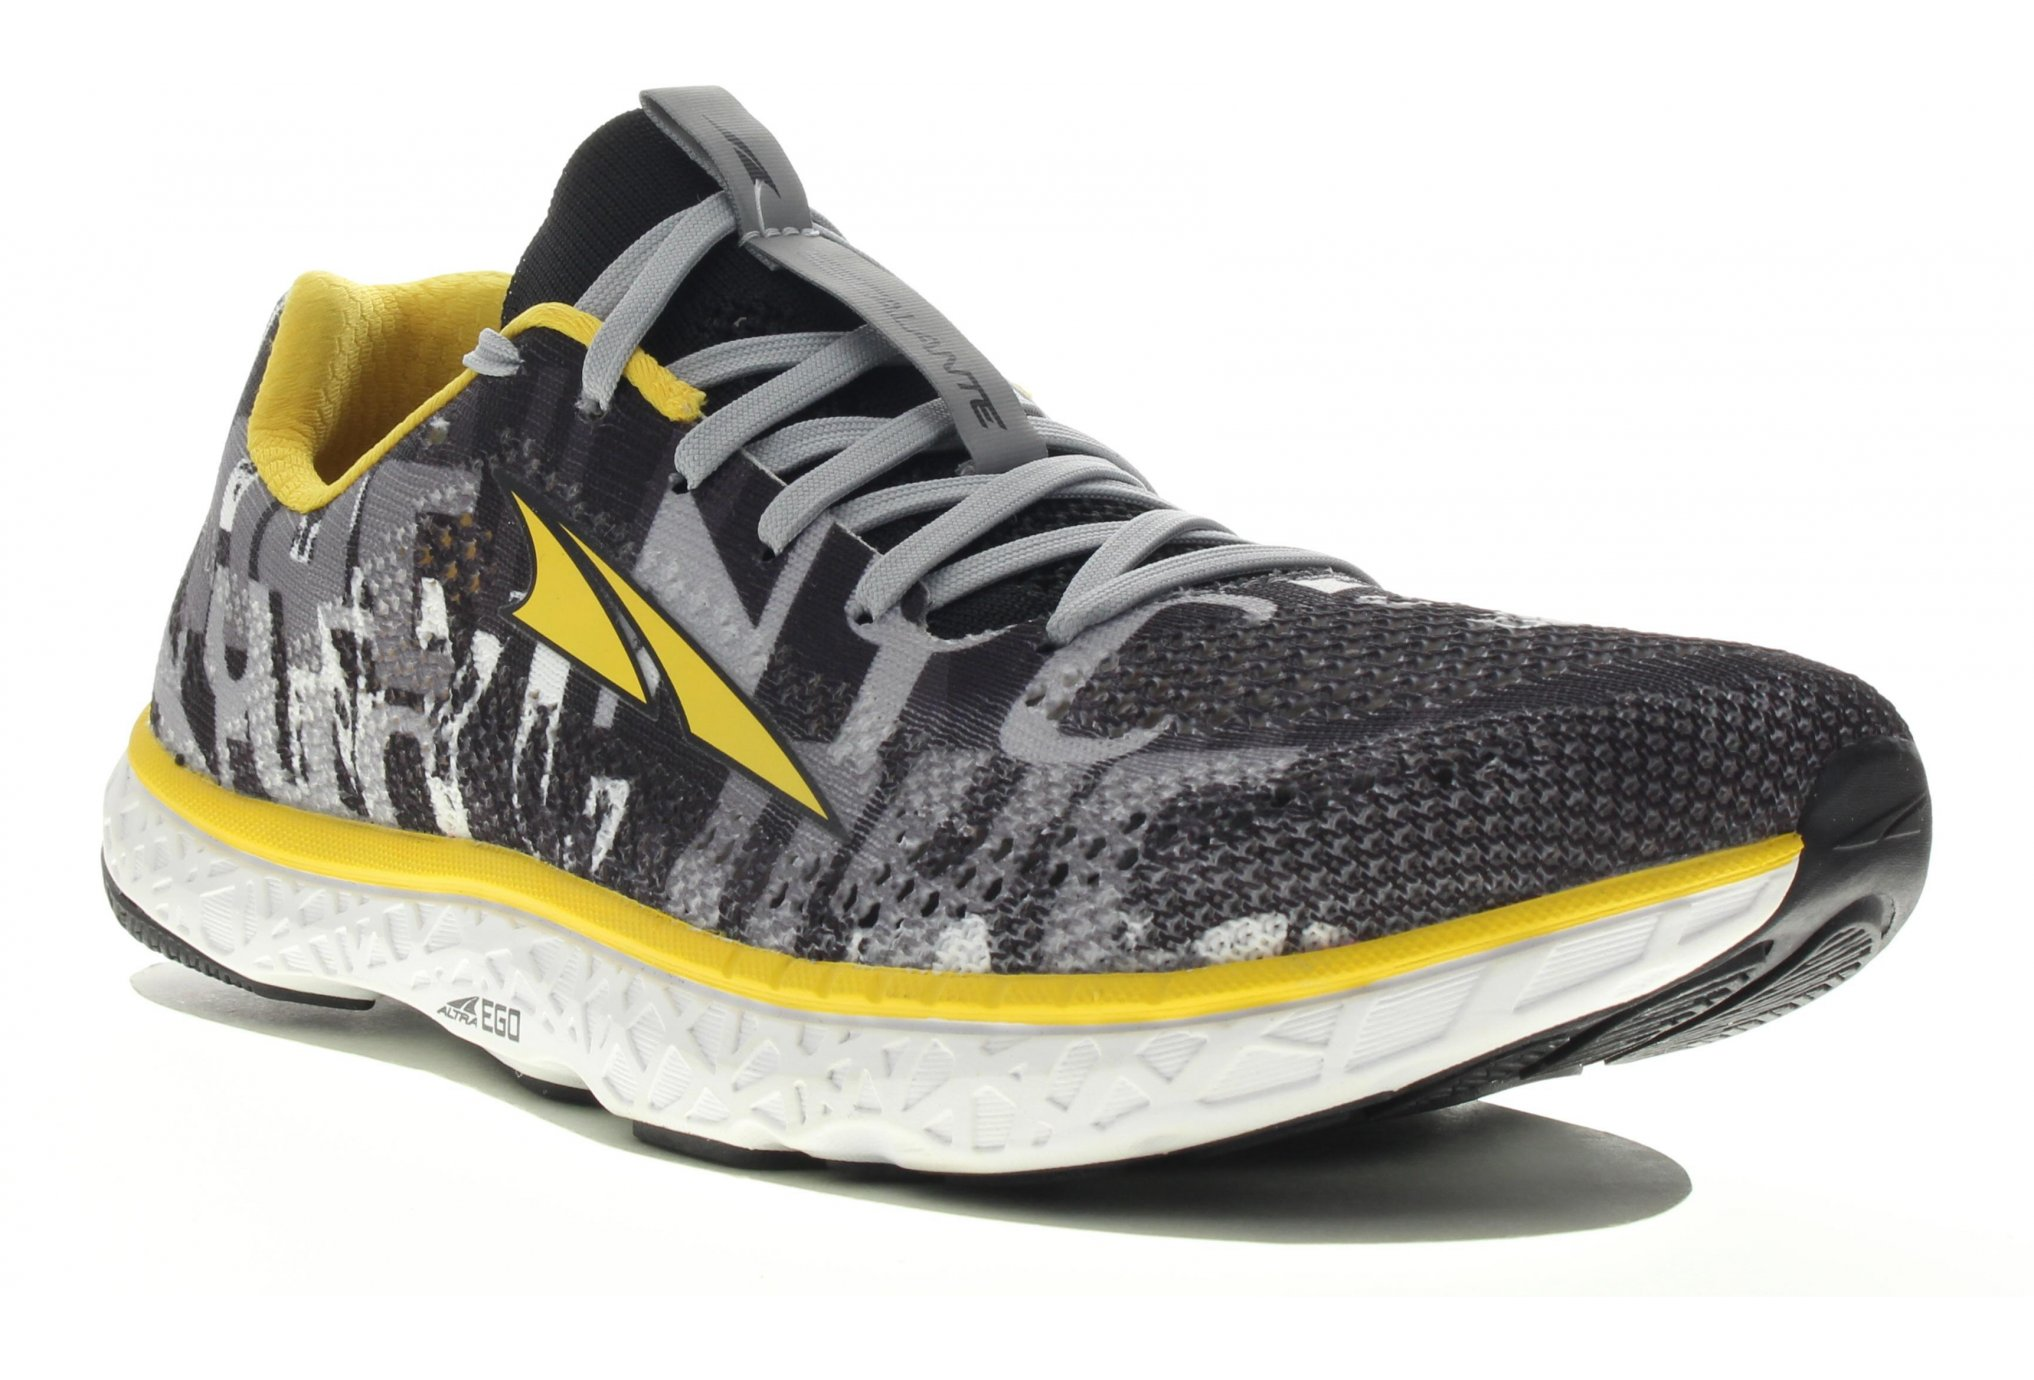 Altra Escalante Racer New-York City Chaussures homme